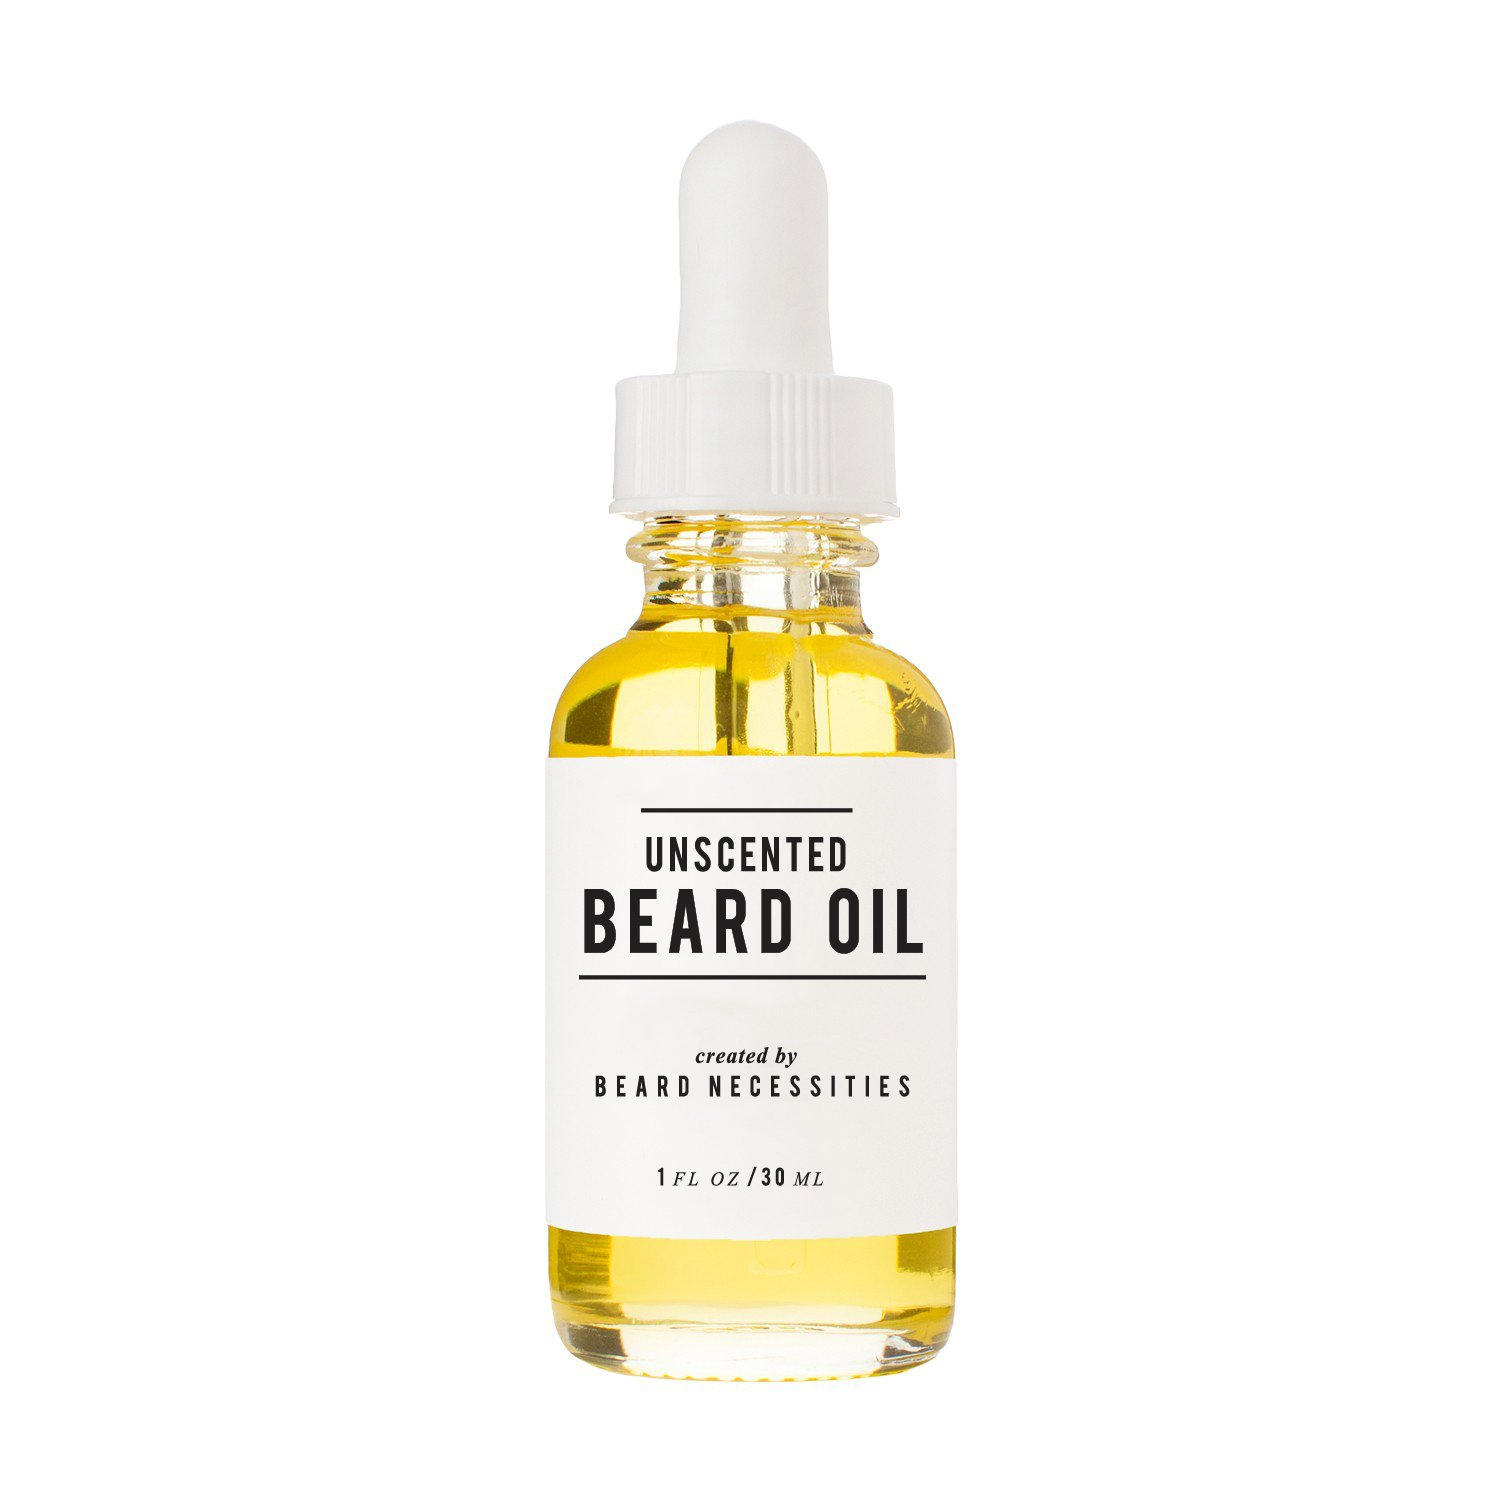 Unscented Beard Oil & Leave In Conditioner By Beard Necessities - Natural Argan & Jojoba Oils Will Soften Facial Hair & Allow Growth. Best Oil For Mens Grooming Kit. Care For Your Beard Today! (1 Oz)